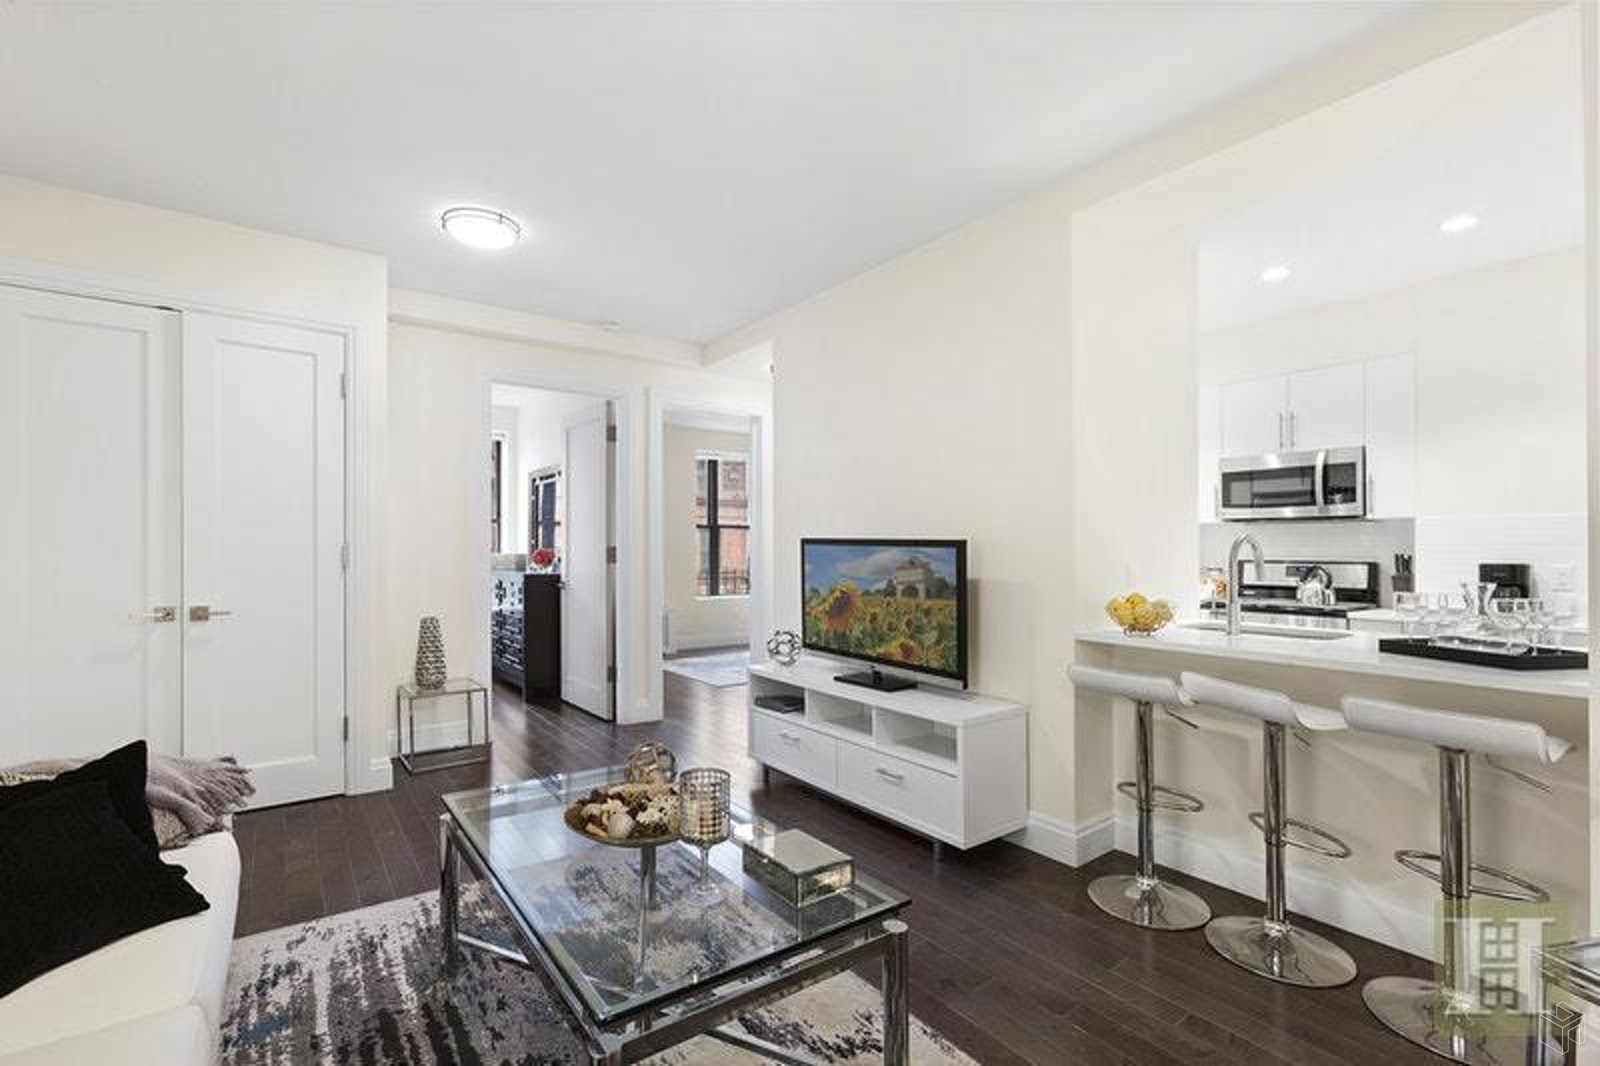 98 Morningside Avenue 26, Upper Manhattan, NYC, 10027, Price Not Disclosed, Rented Property, Halstead Real Estate, Photo 1